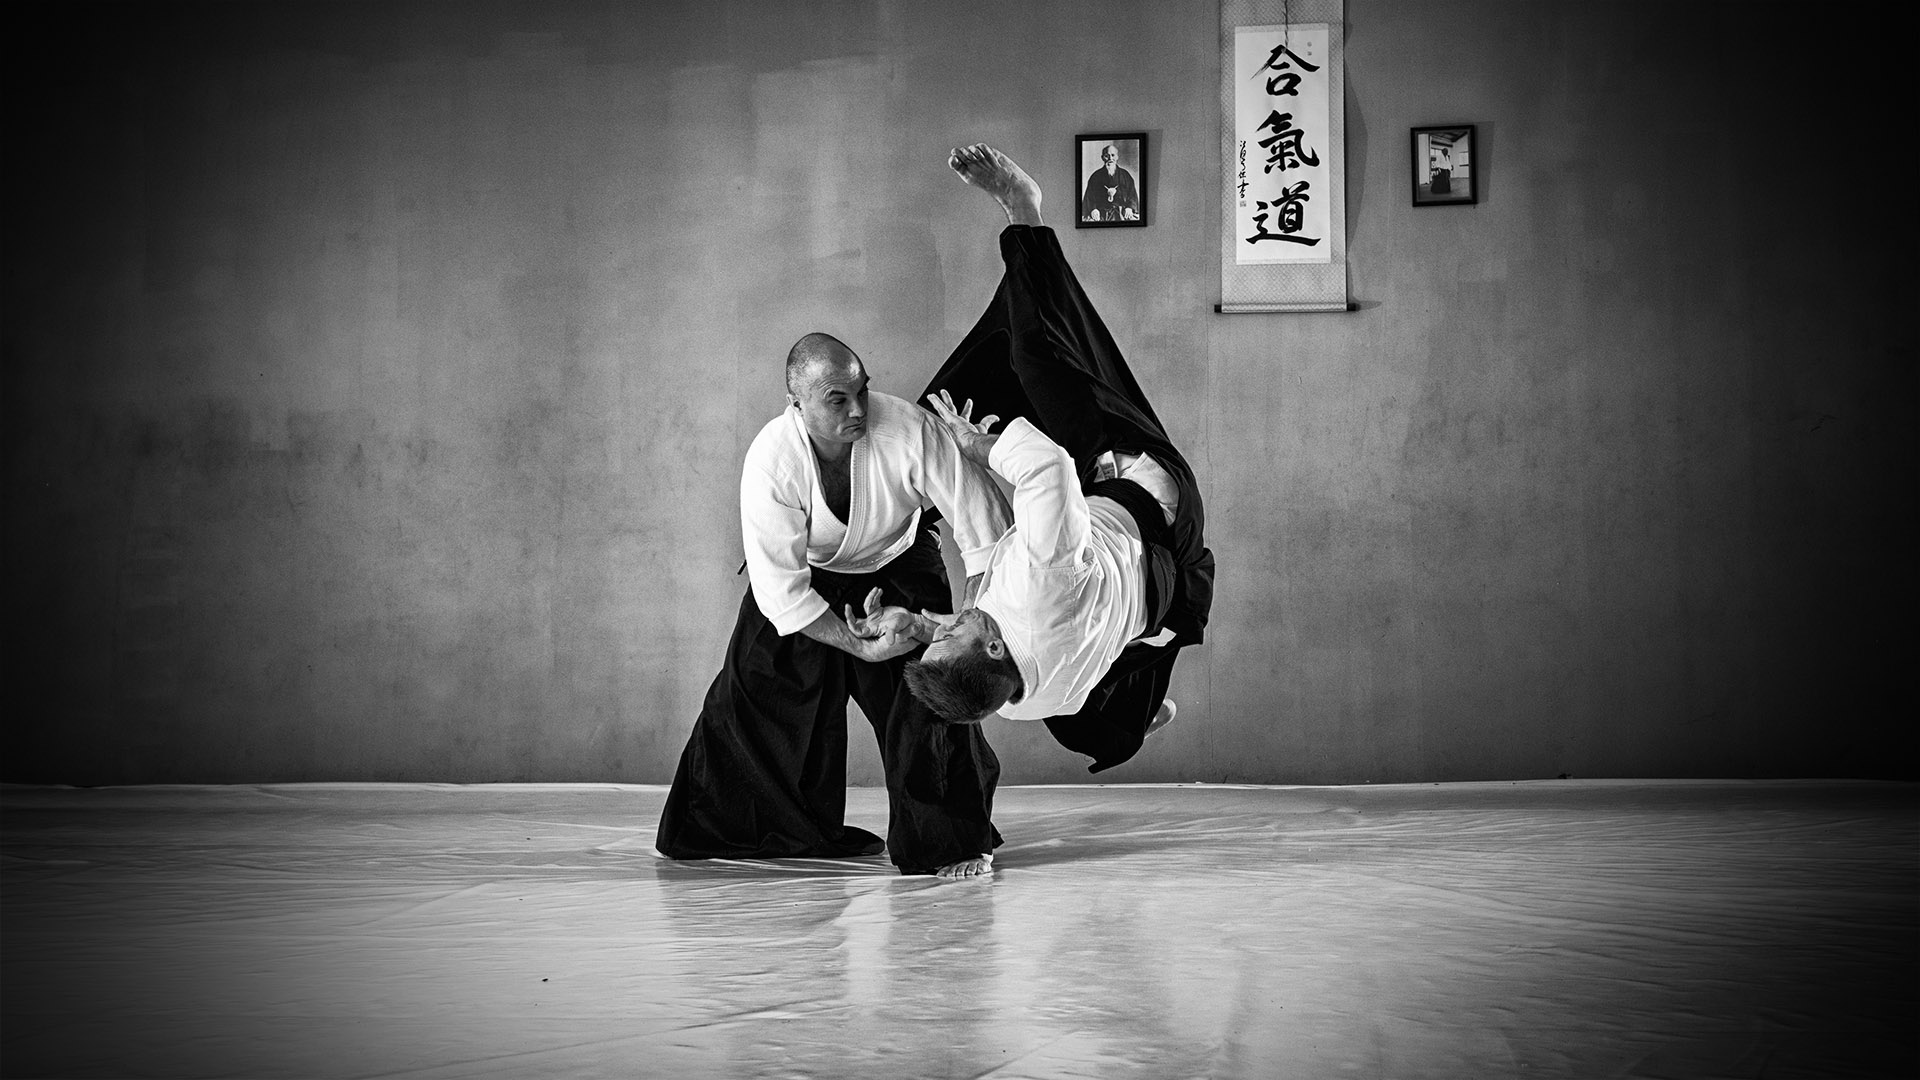 Aikido Wallpaper